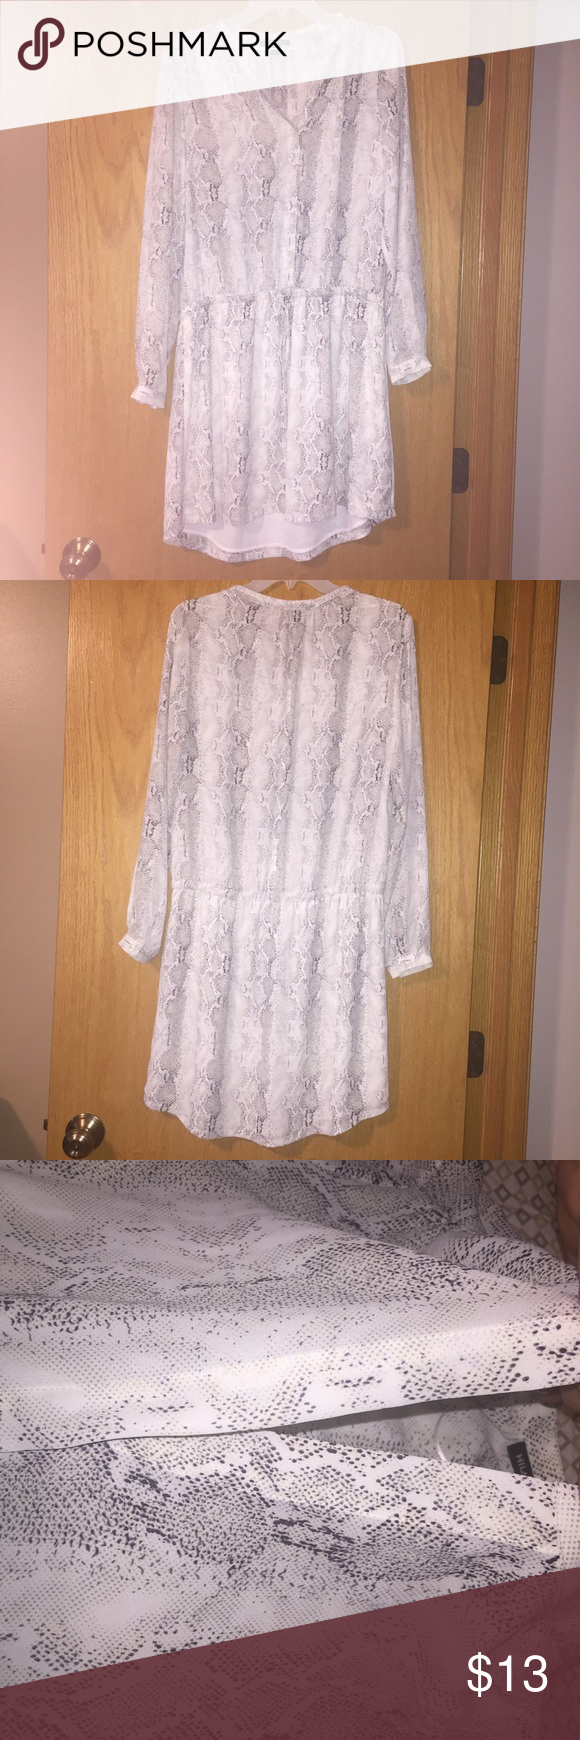 Hilary Radley tunic dress long sleeve speckled Beautiful Tunis dress.  Lightweight.  Long sleeve.  Only the skirt is lined. Top is not lined.  Half way hidden button  up. Button sleeves. White with Planck speckles. Tie at waist.  New without tag.  Tried on only, too big for me 🙃 Dresses Long Sleeve